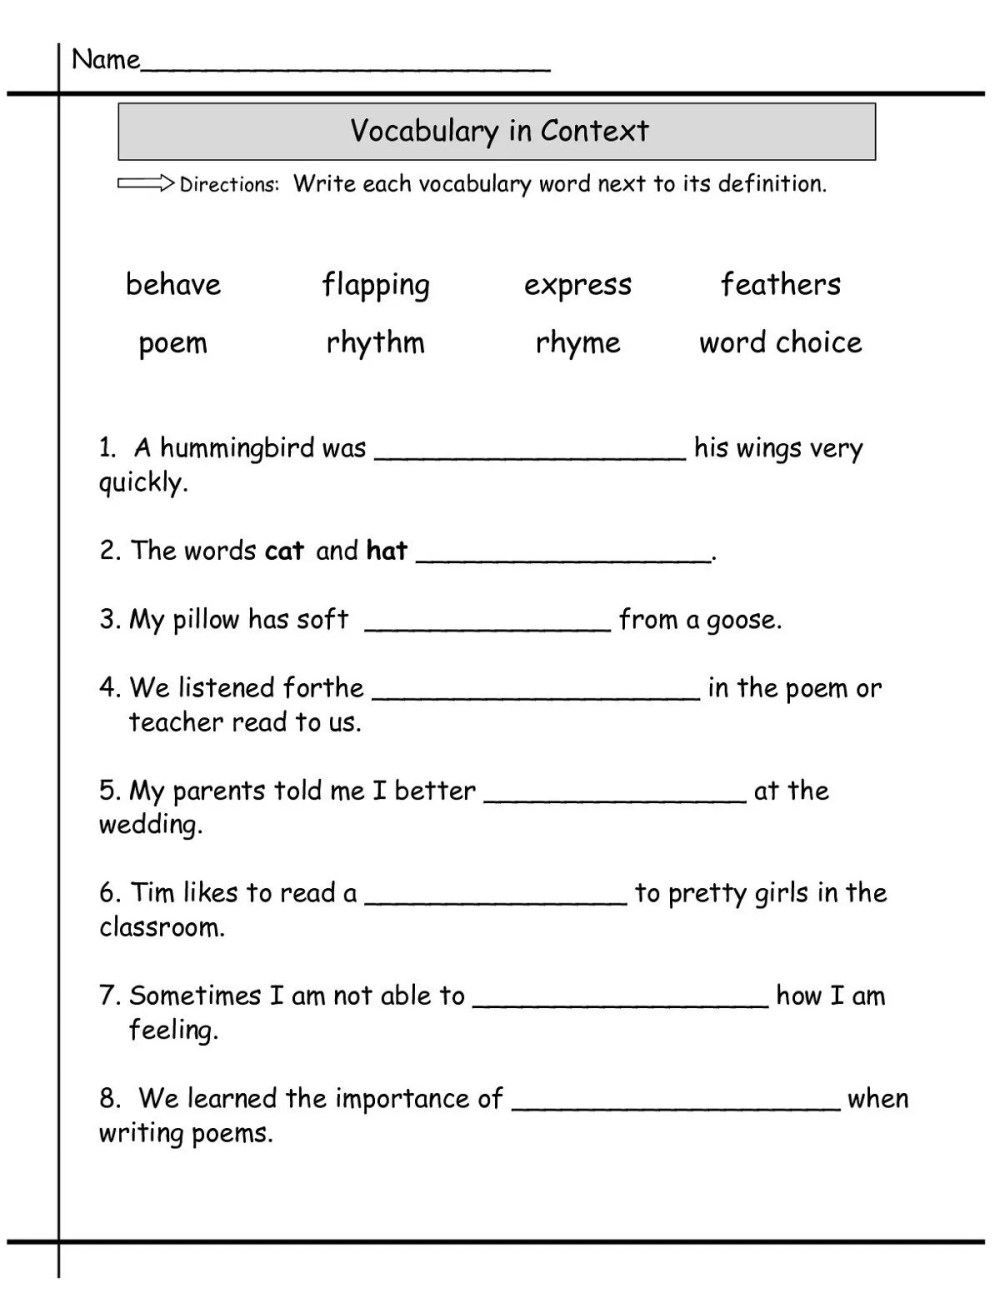 medium resolution of 2nd Grade English Worksheets - Best Coloring Pages For Kids